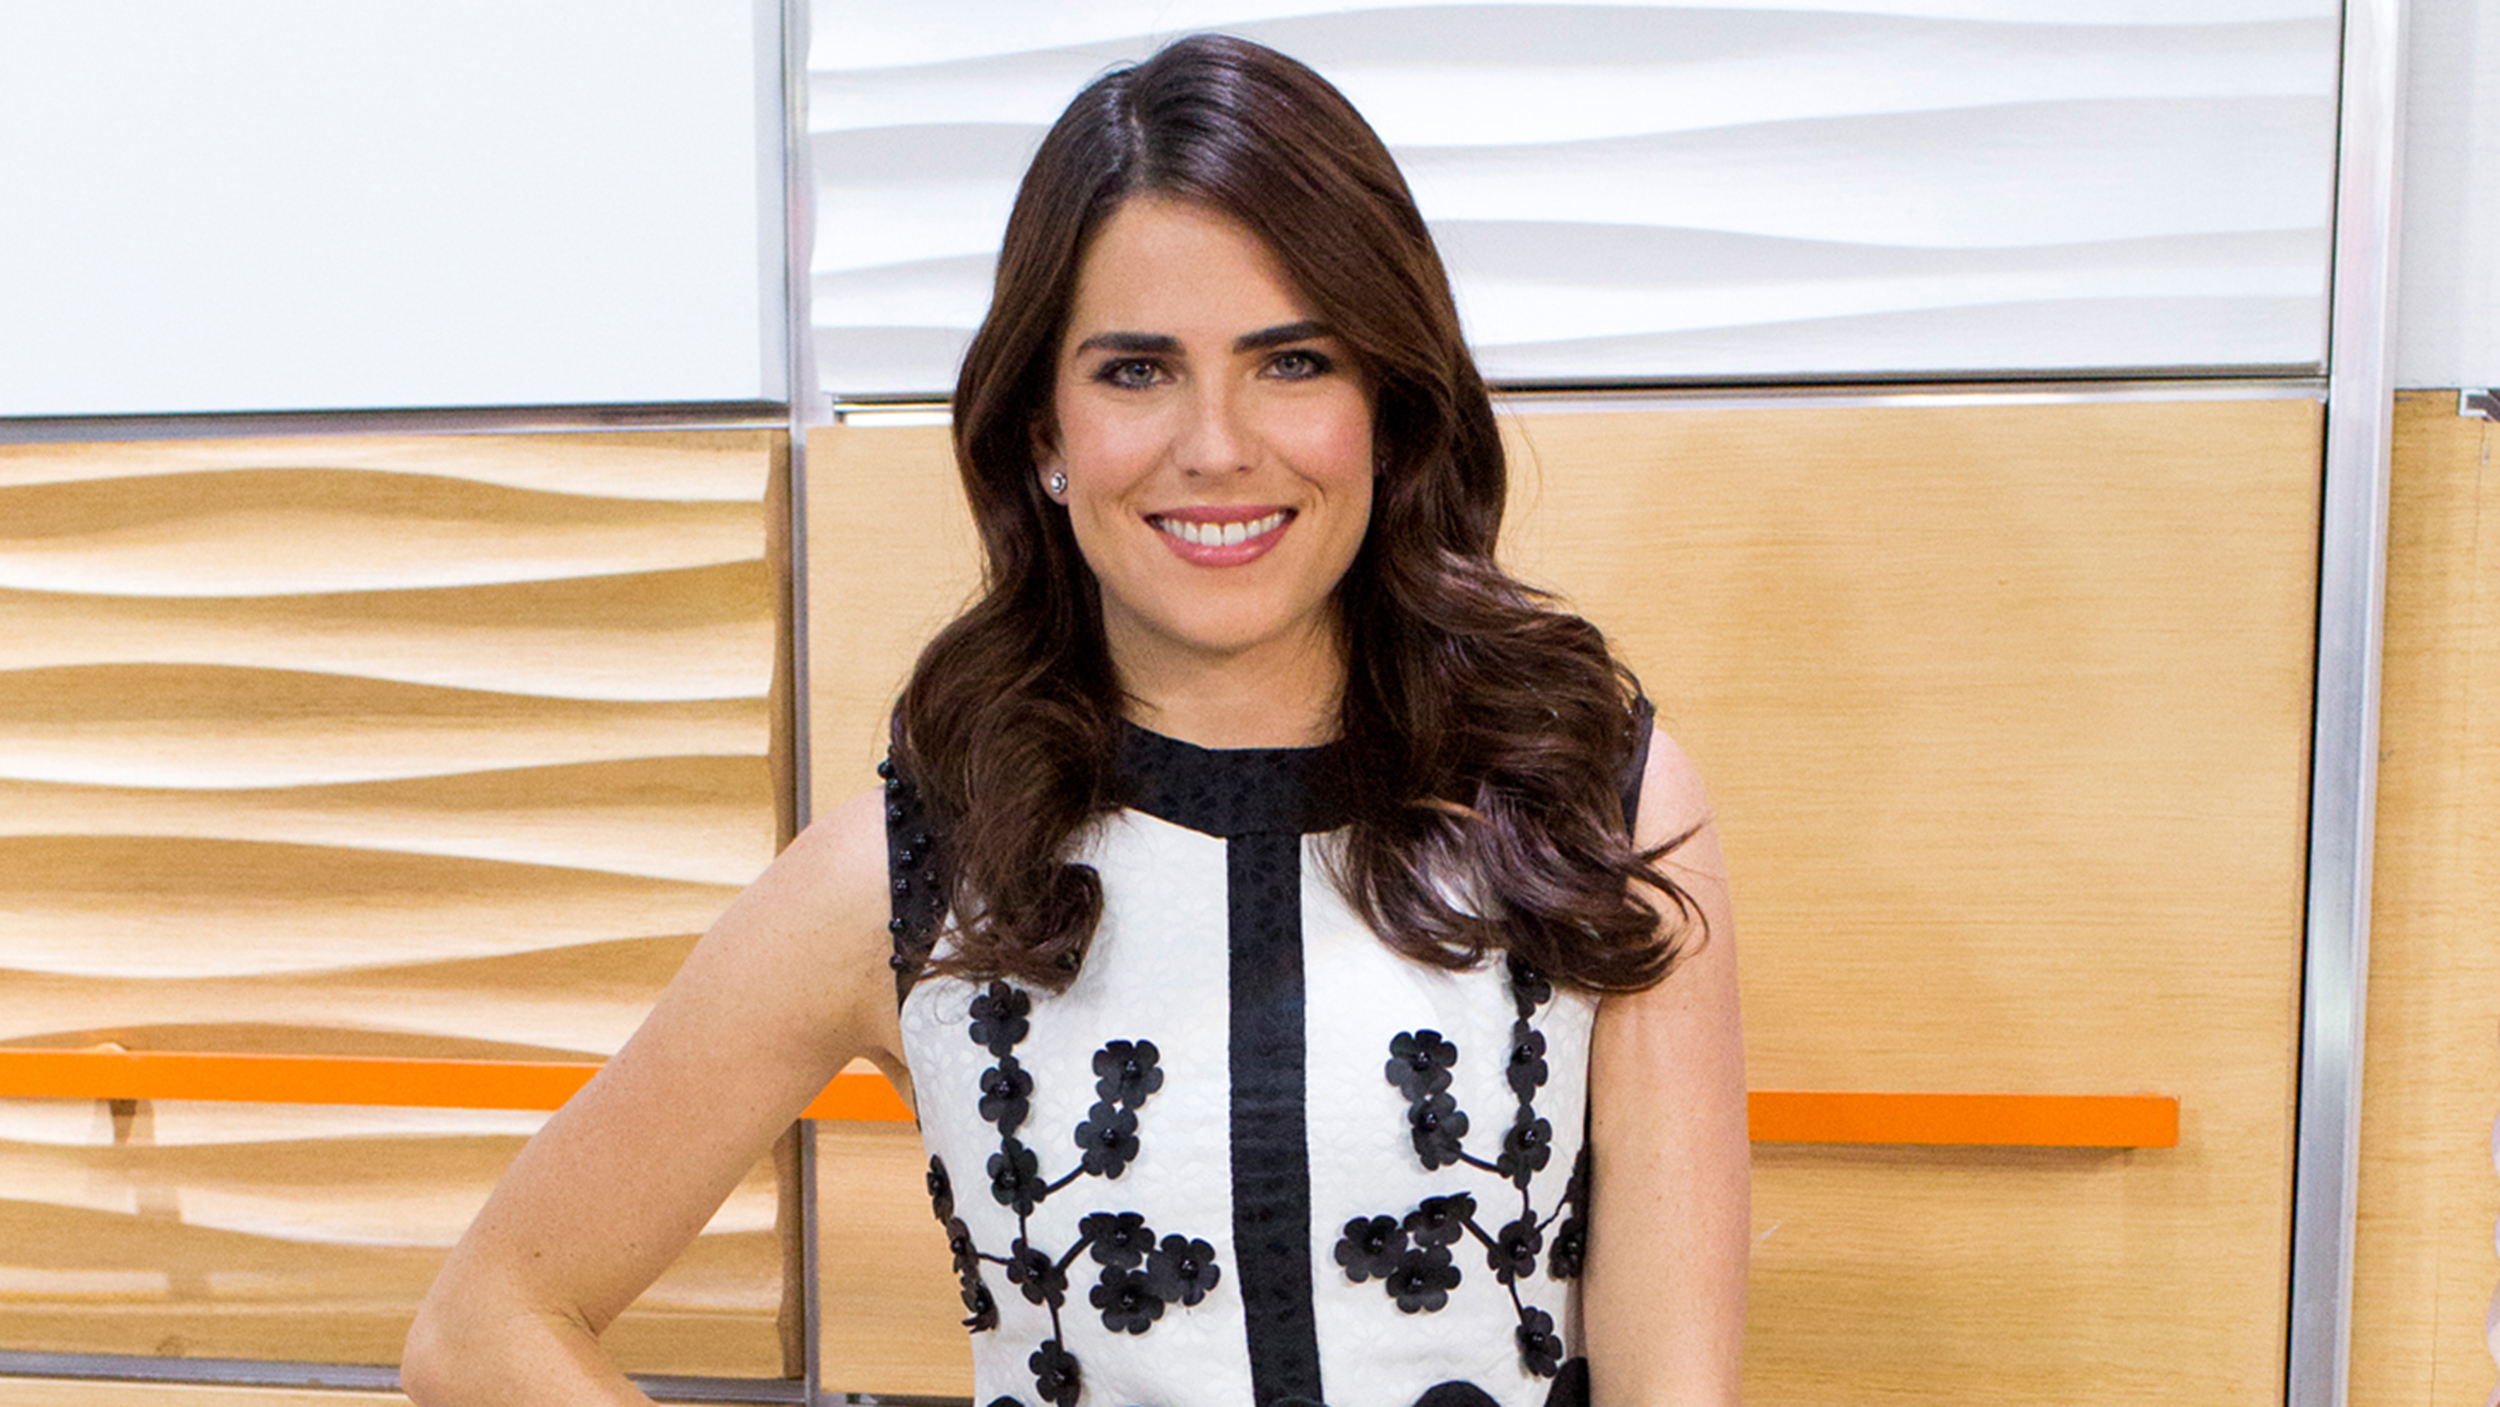 Karla Souza: Actress makes a stylish appearance on TODAY ...